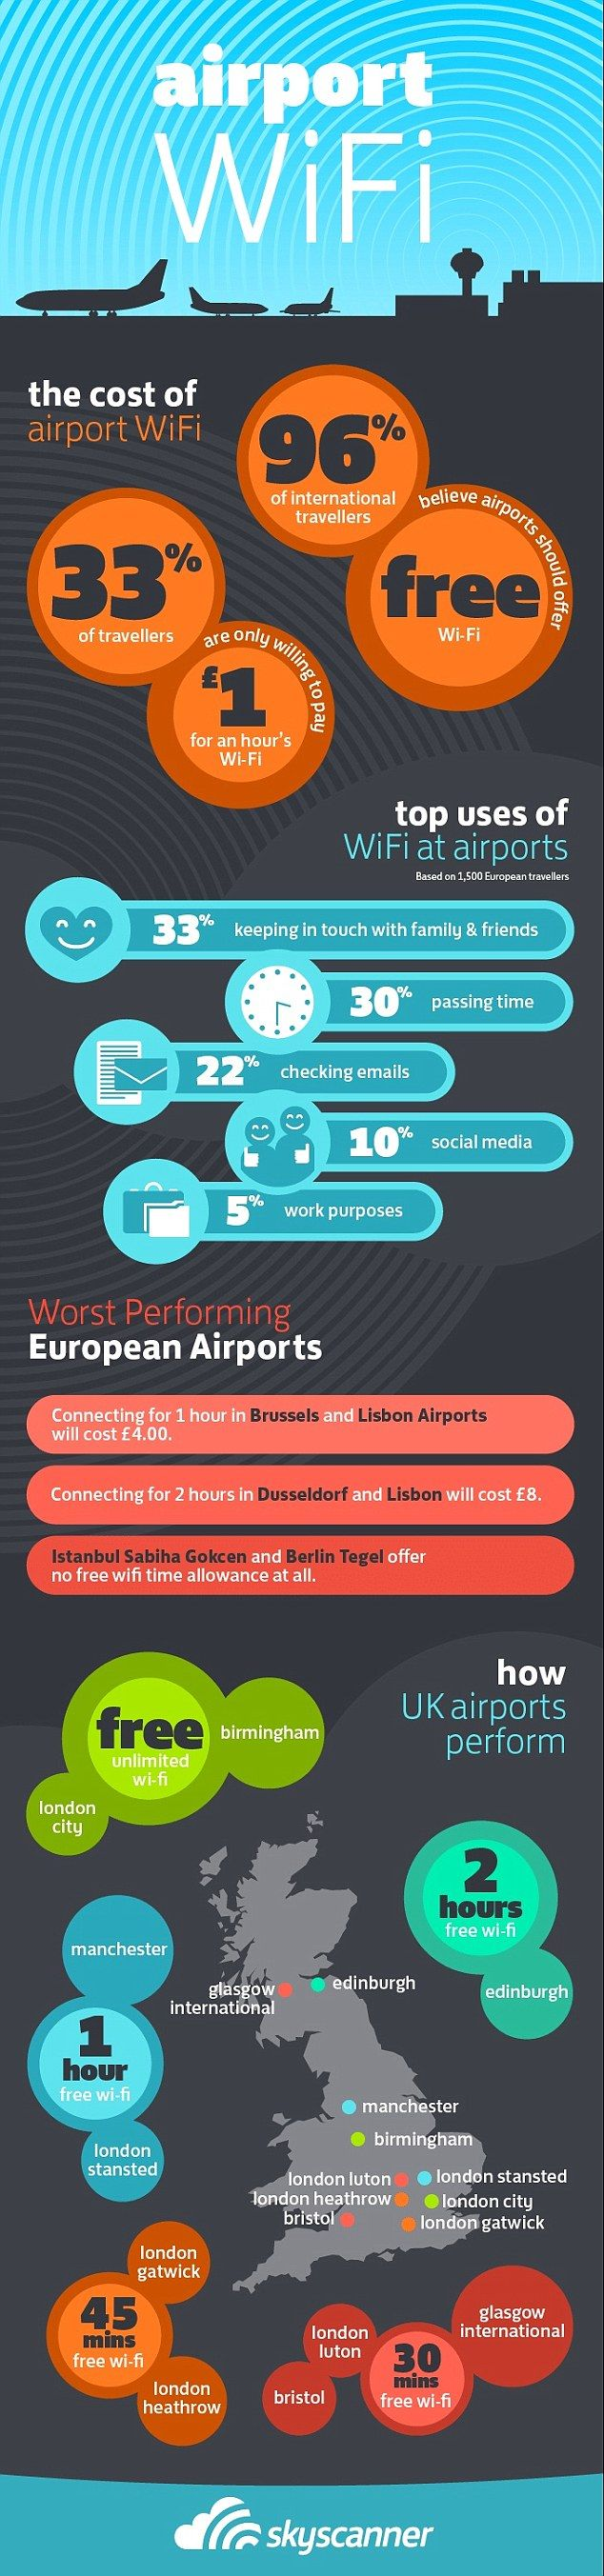 Infographic reveals how airports perform for passenger wifi... - Airport WiFi